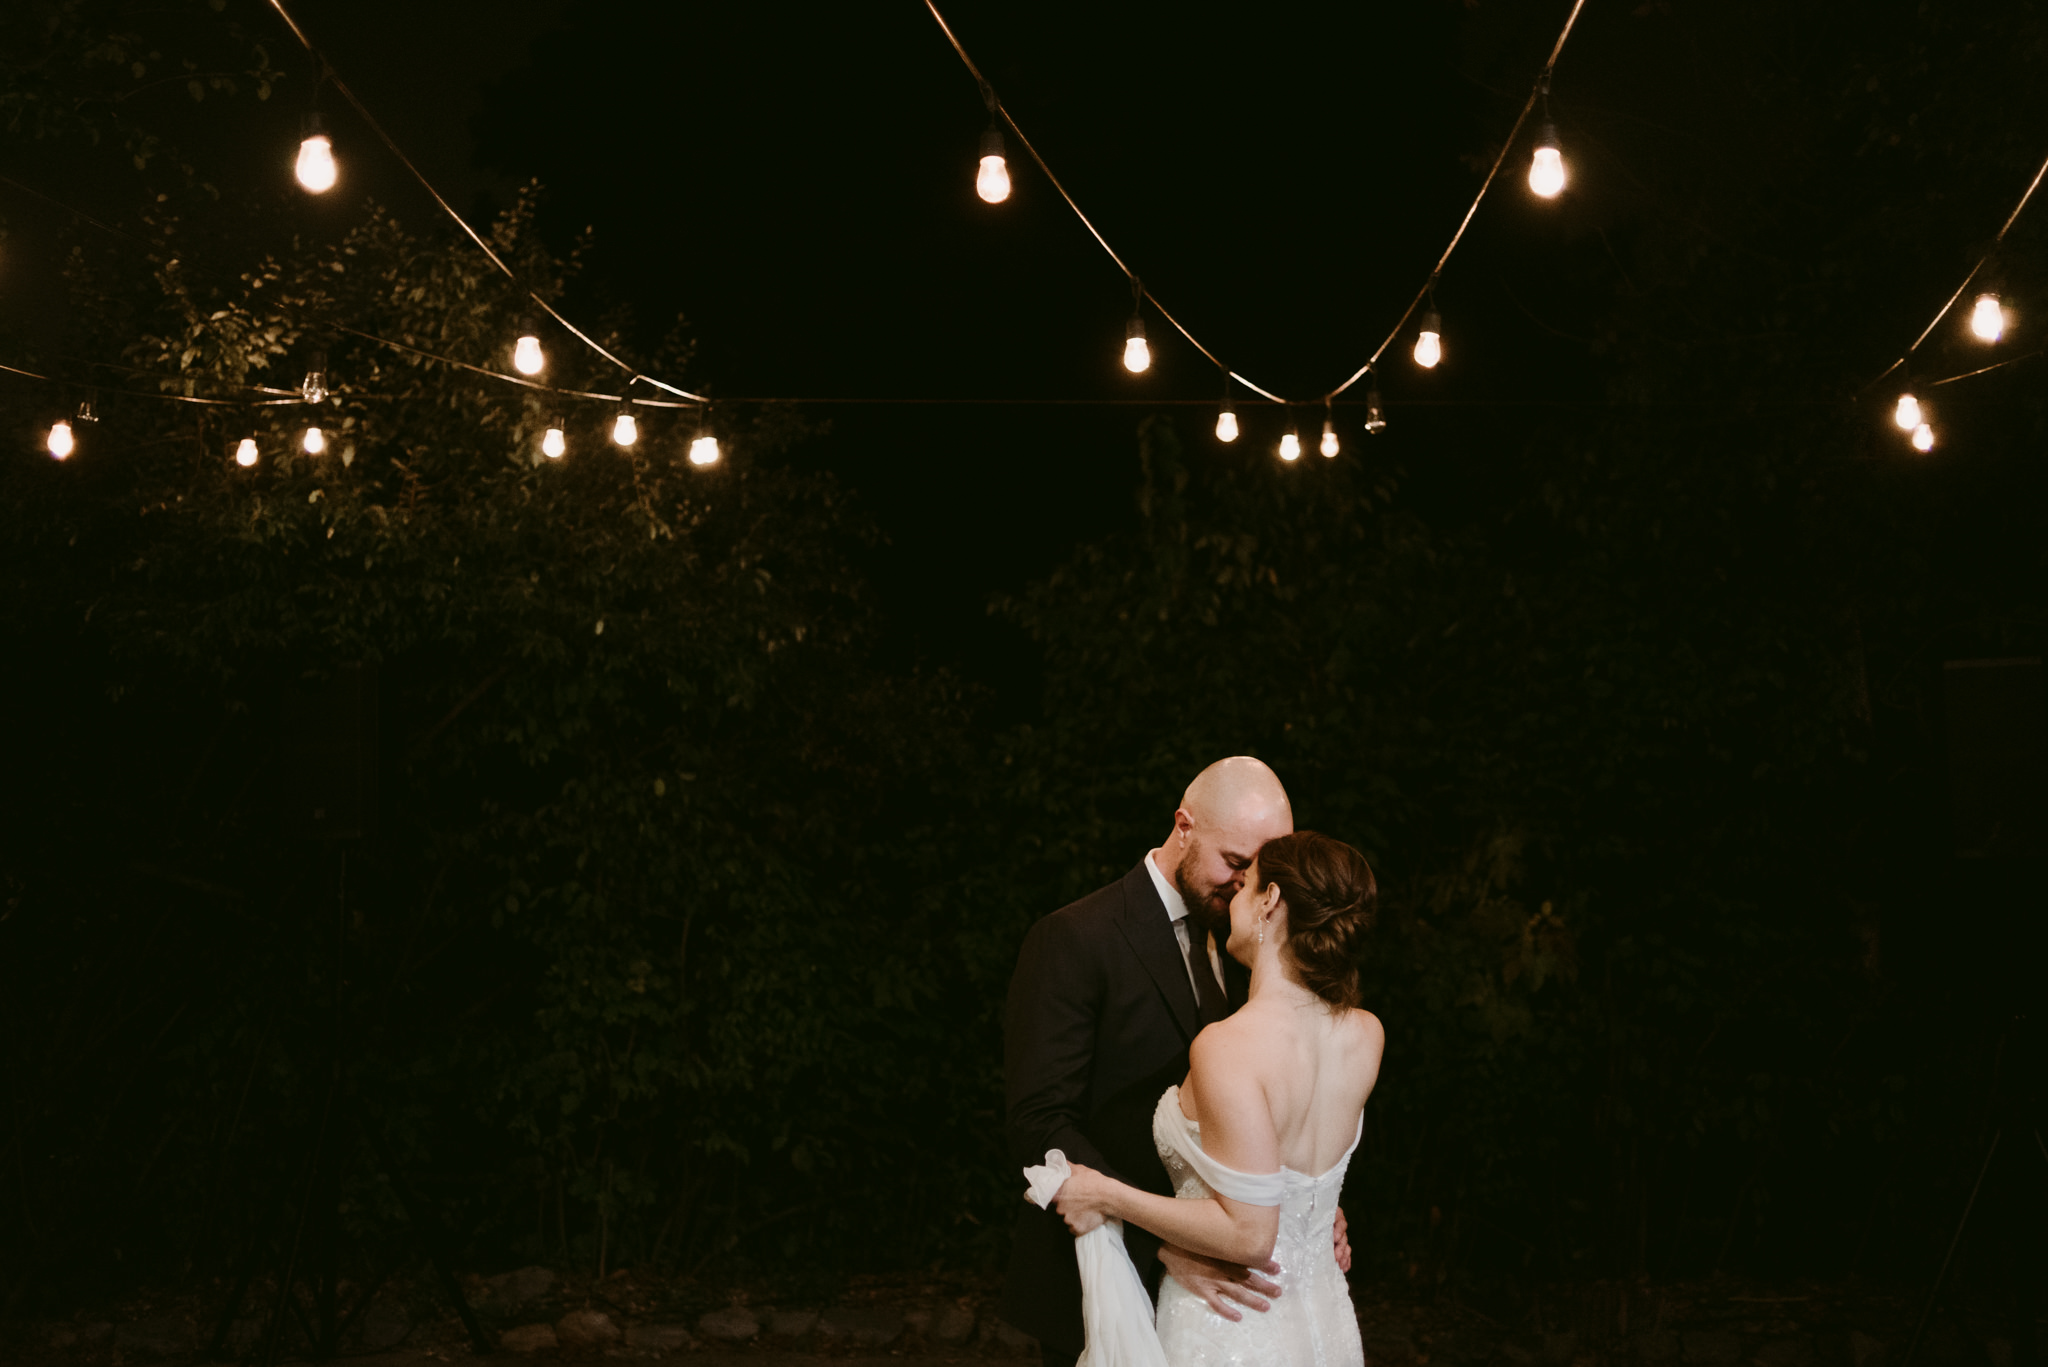 Bride and groom dancing under string lights